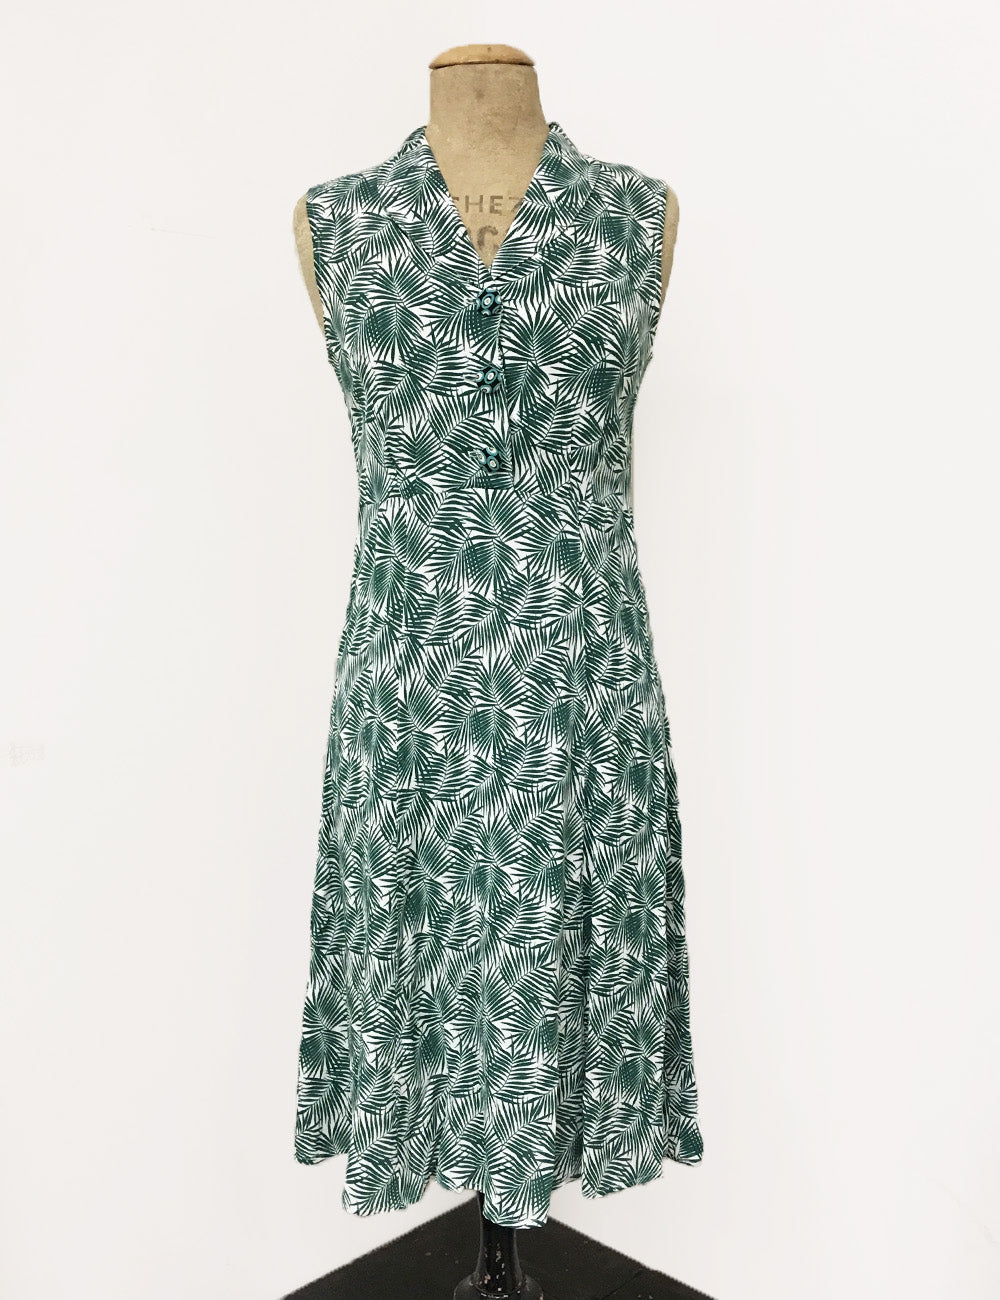 Green Tropical Fern Print Sleeveless Knee Length Vintage Dress